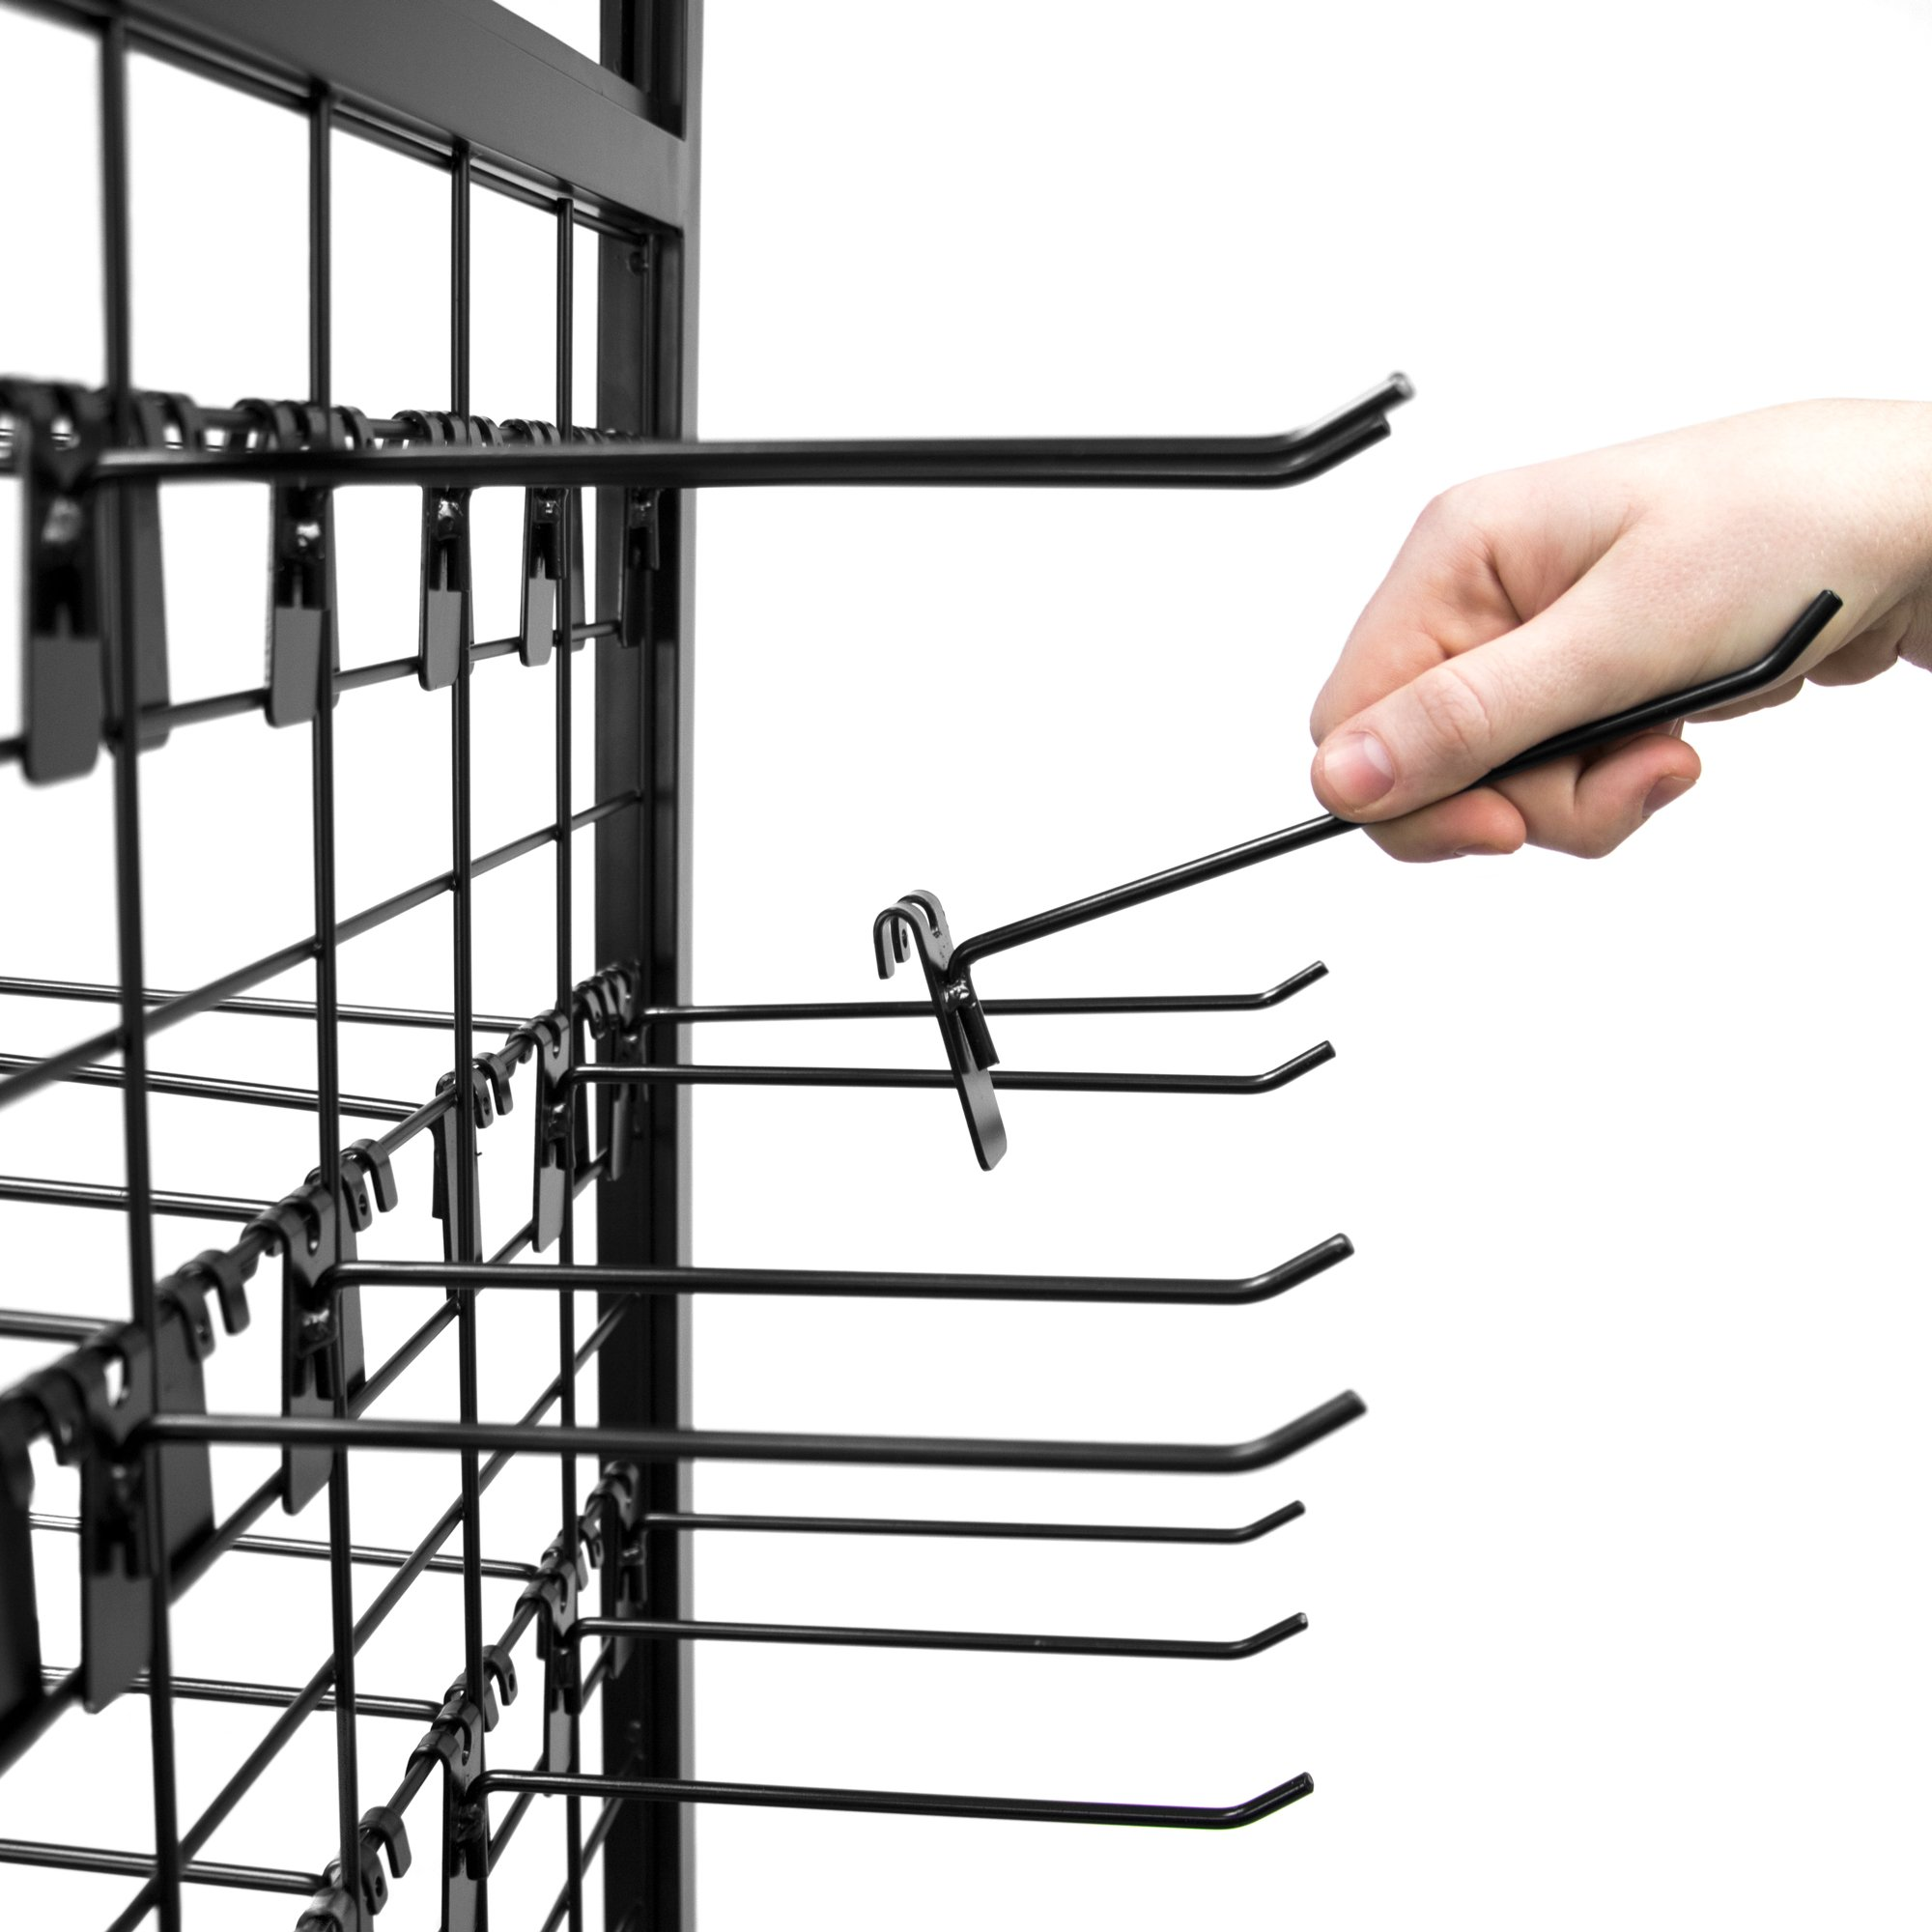 Rolling Retail Display Merchandising Rack Store Fixture, 66'' Tall x 28'' Footprint, Includes 50 Peg Hooks and 4 Shelves by Brybelly by Brybelly (Image #2)